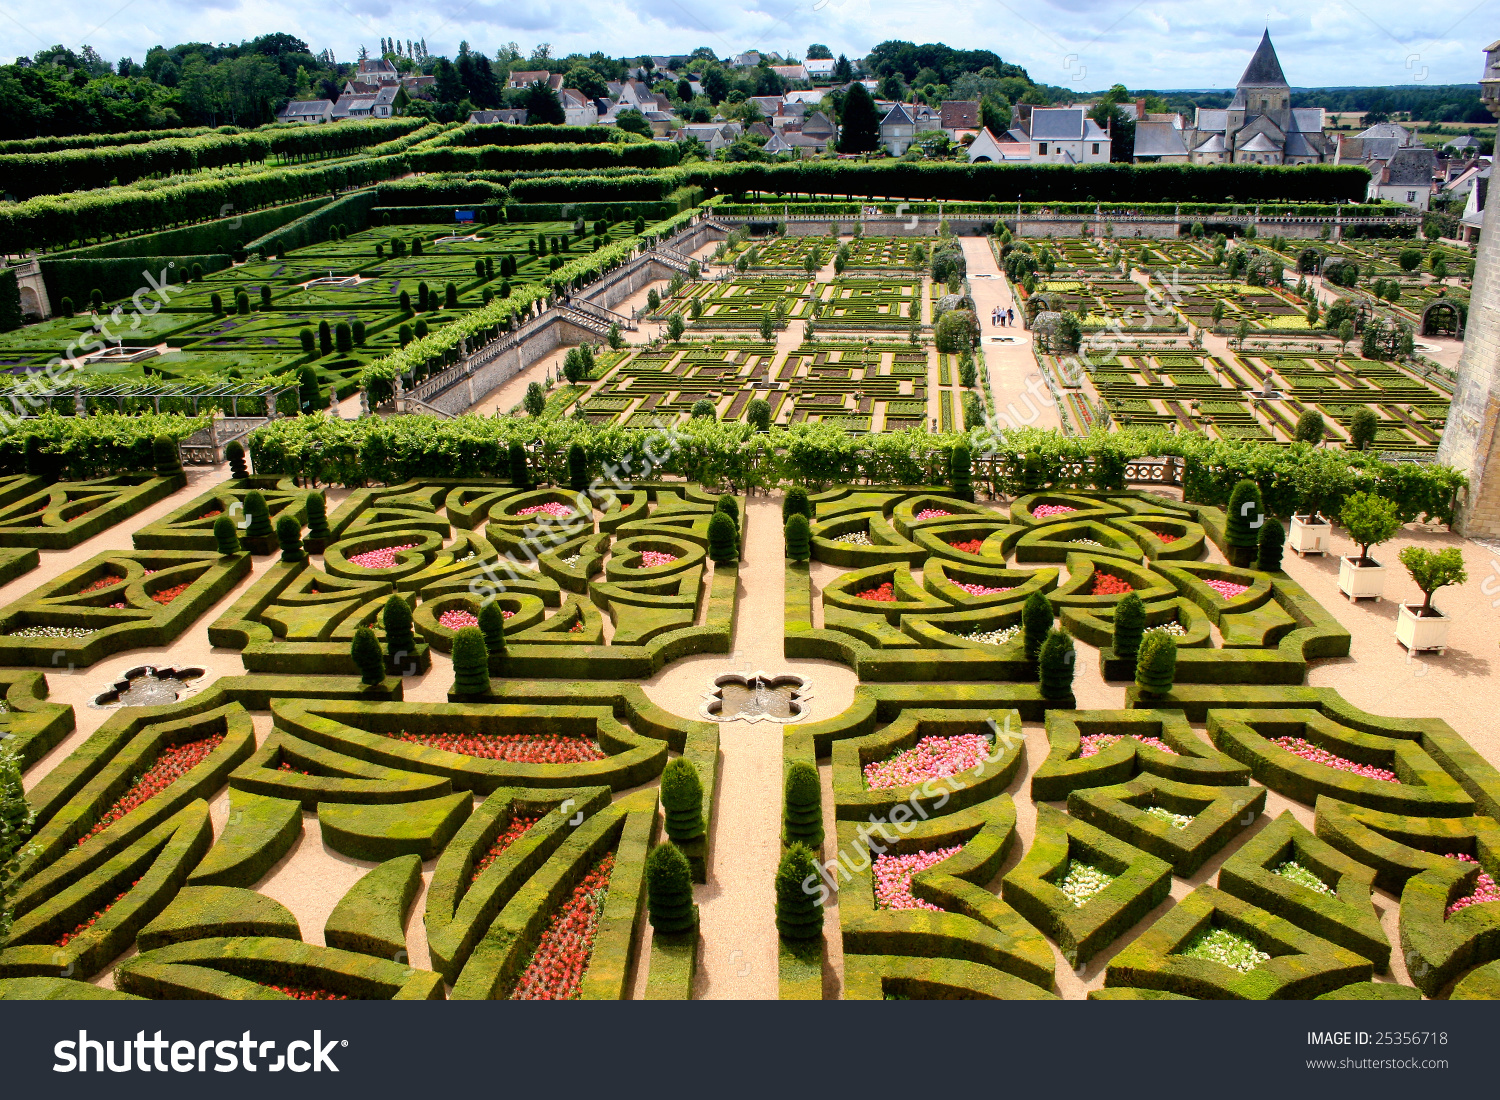 Villandry Castle Garden Stock Photo 25356718 : Shutterstock.